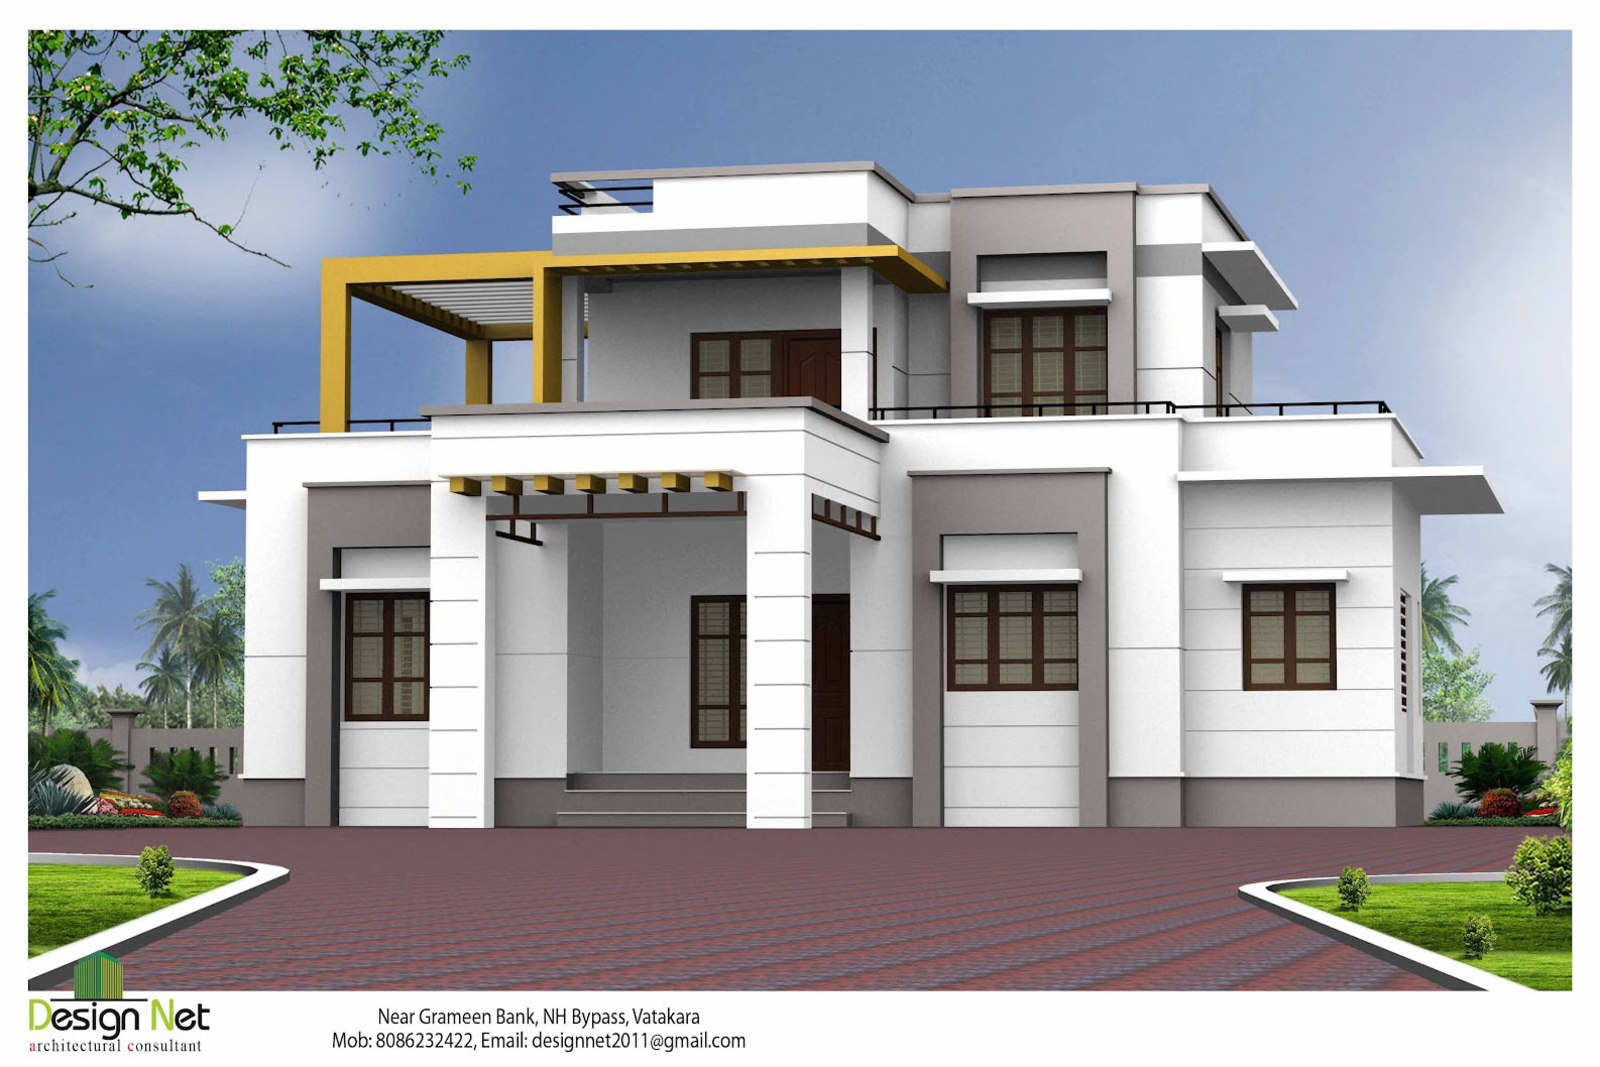 Image gallery outside house designs for Building design outside